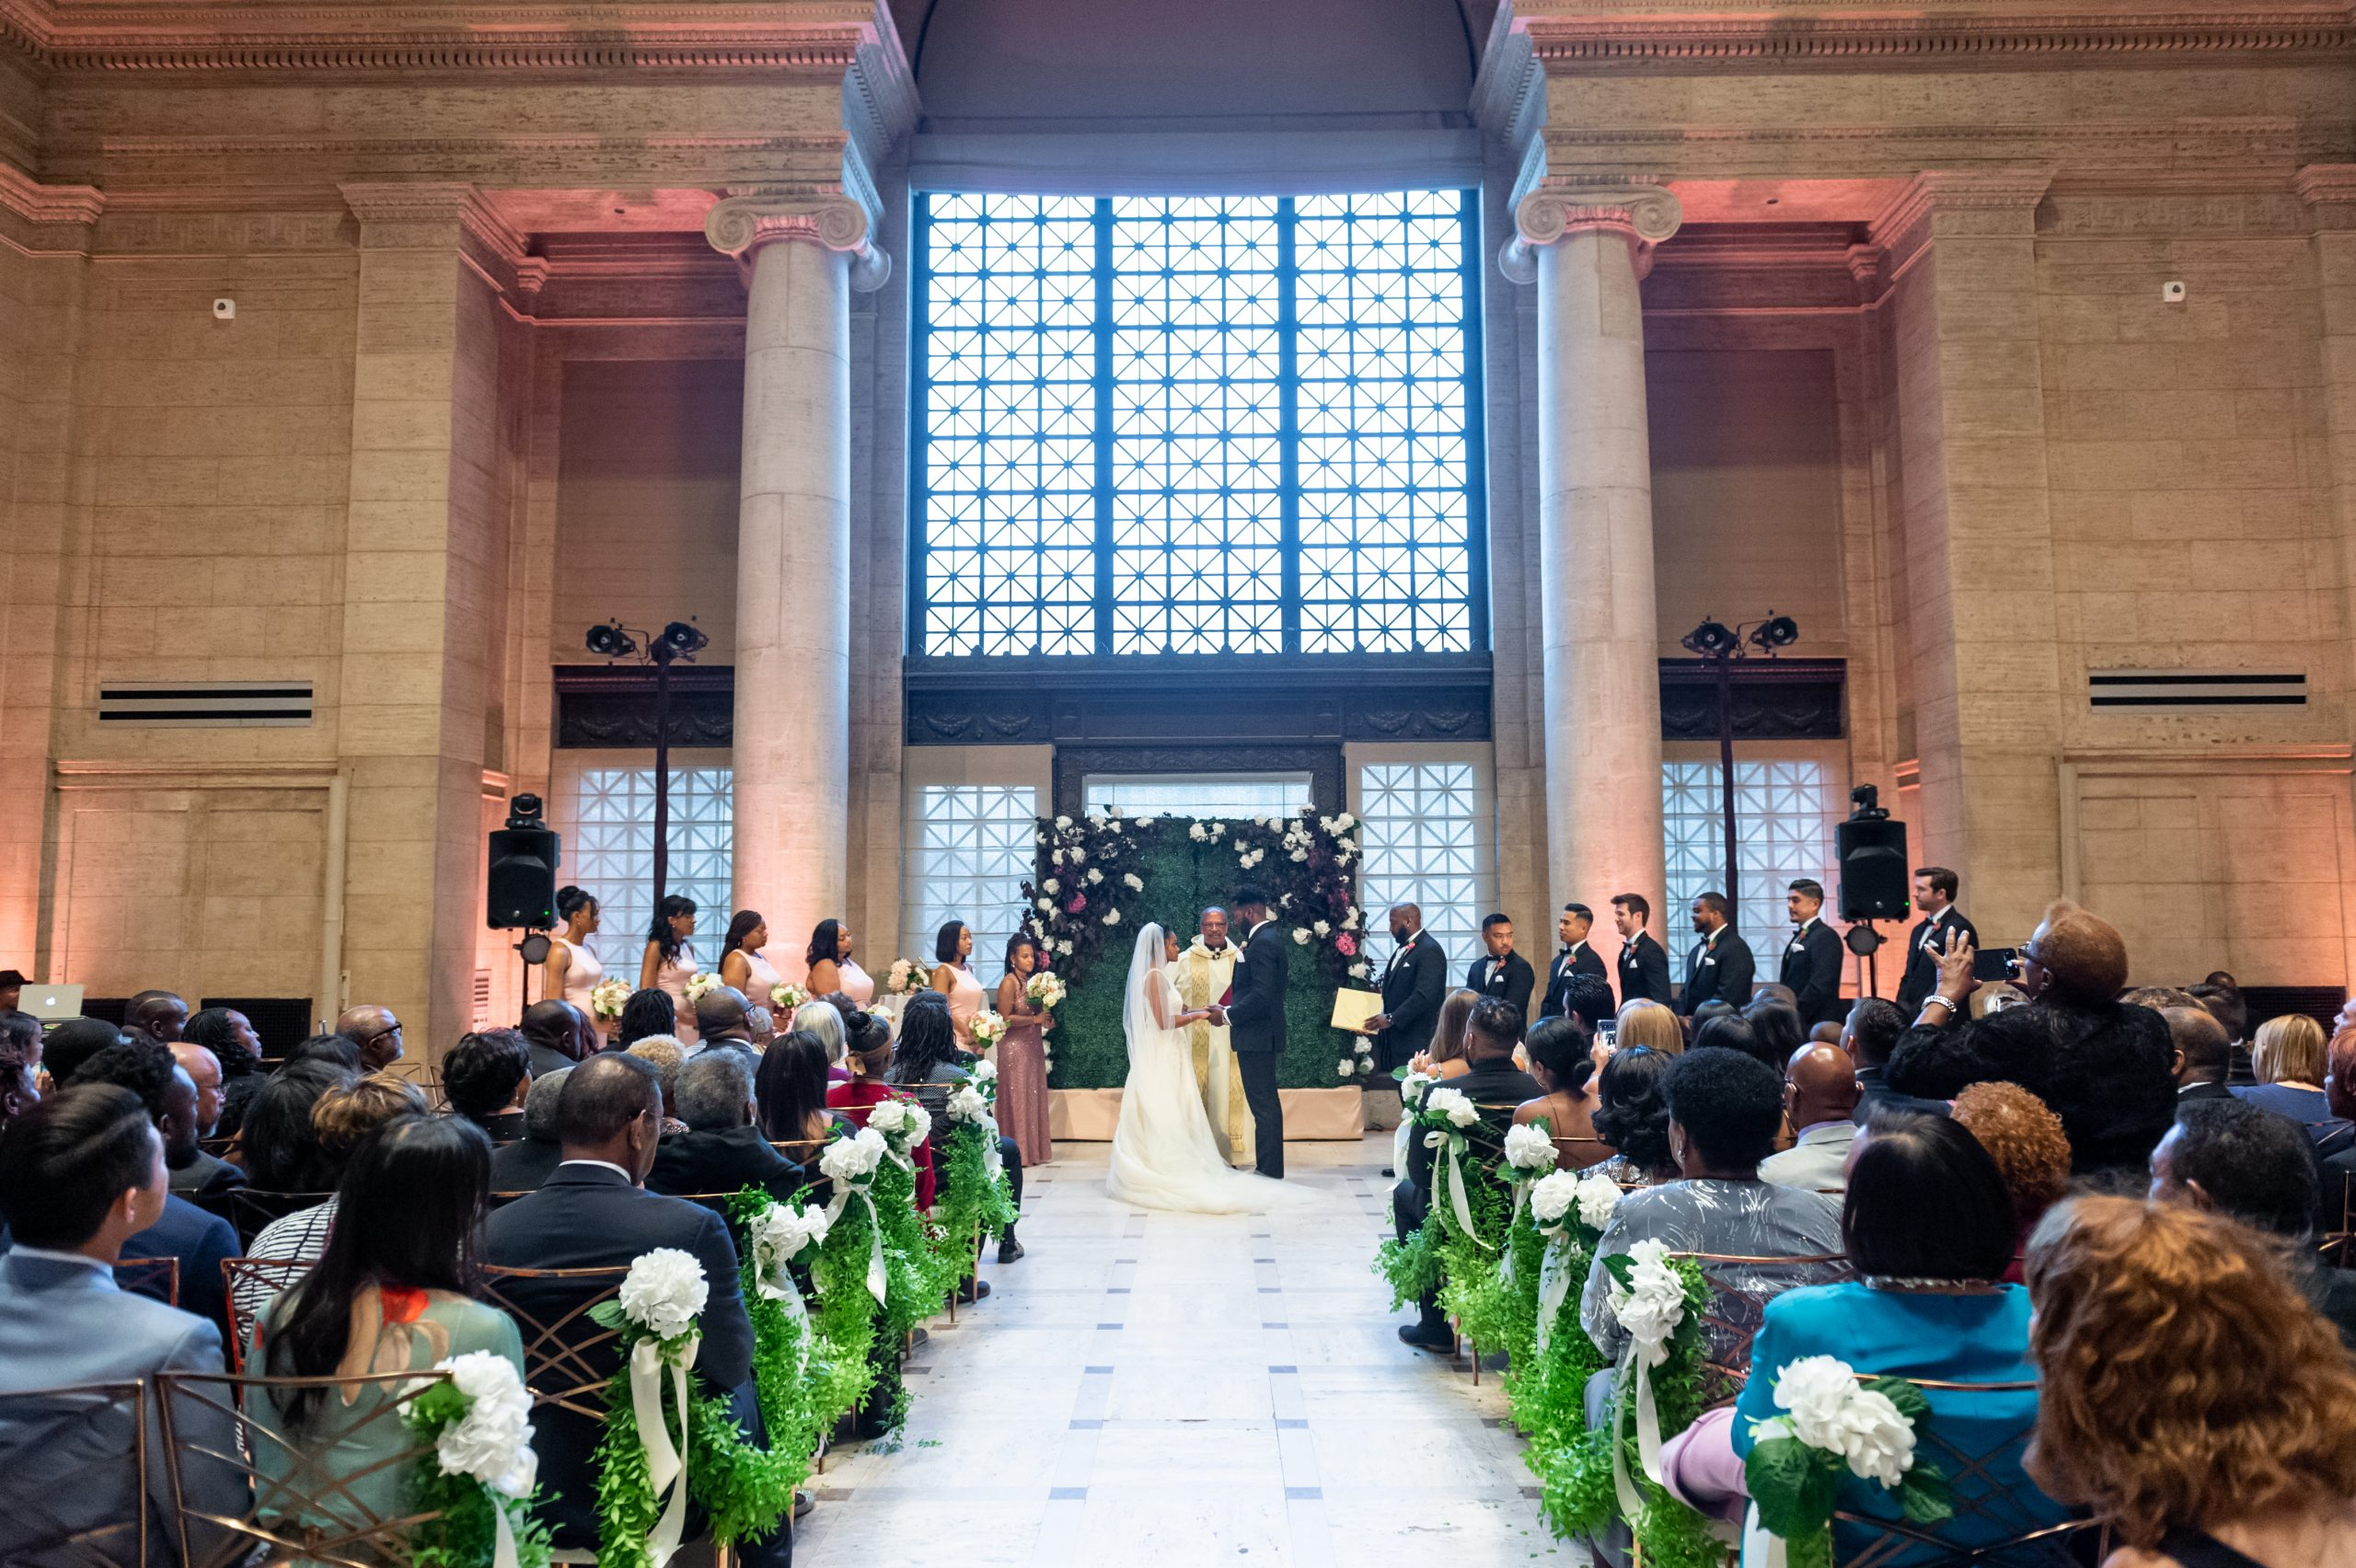 wedding ceremony at san francisco asian art museum wedding by chloe jackman photography